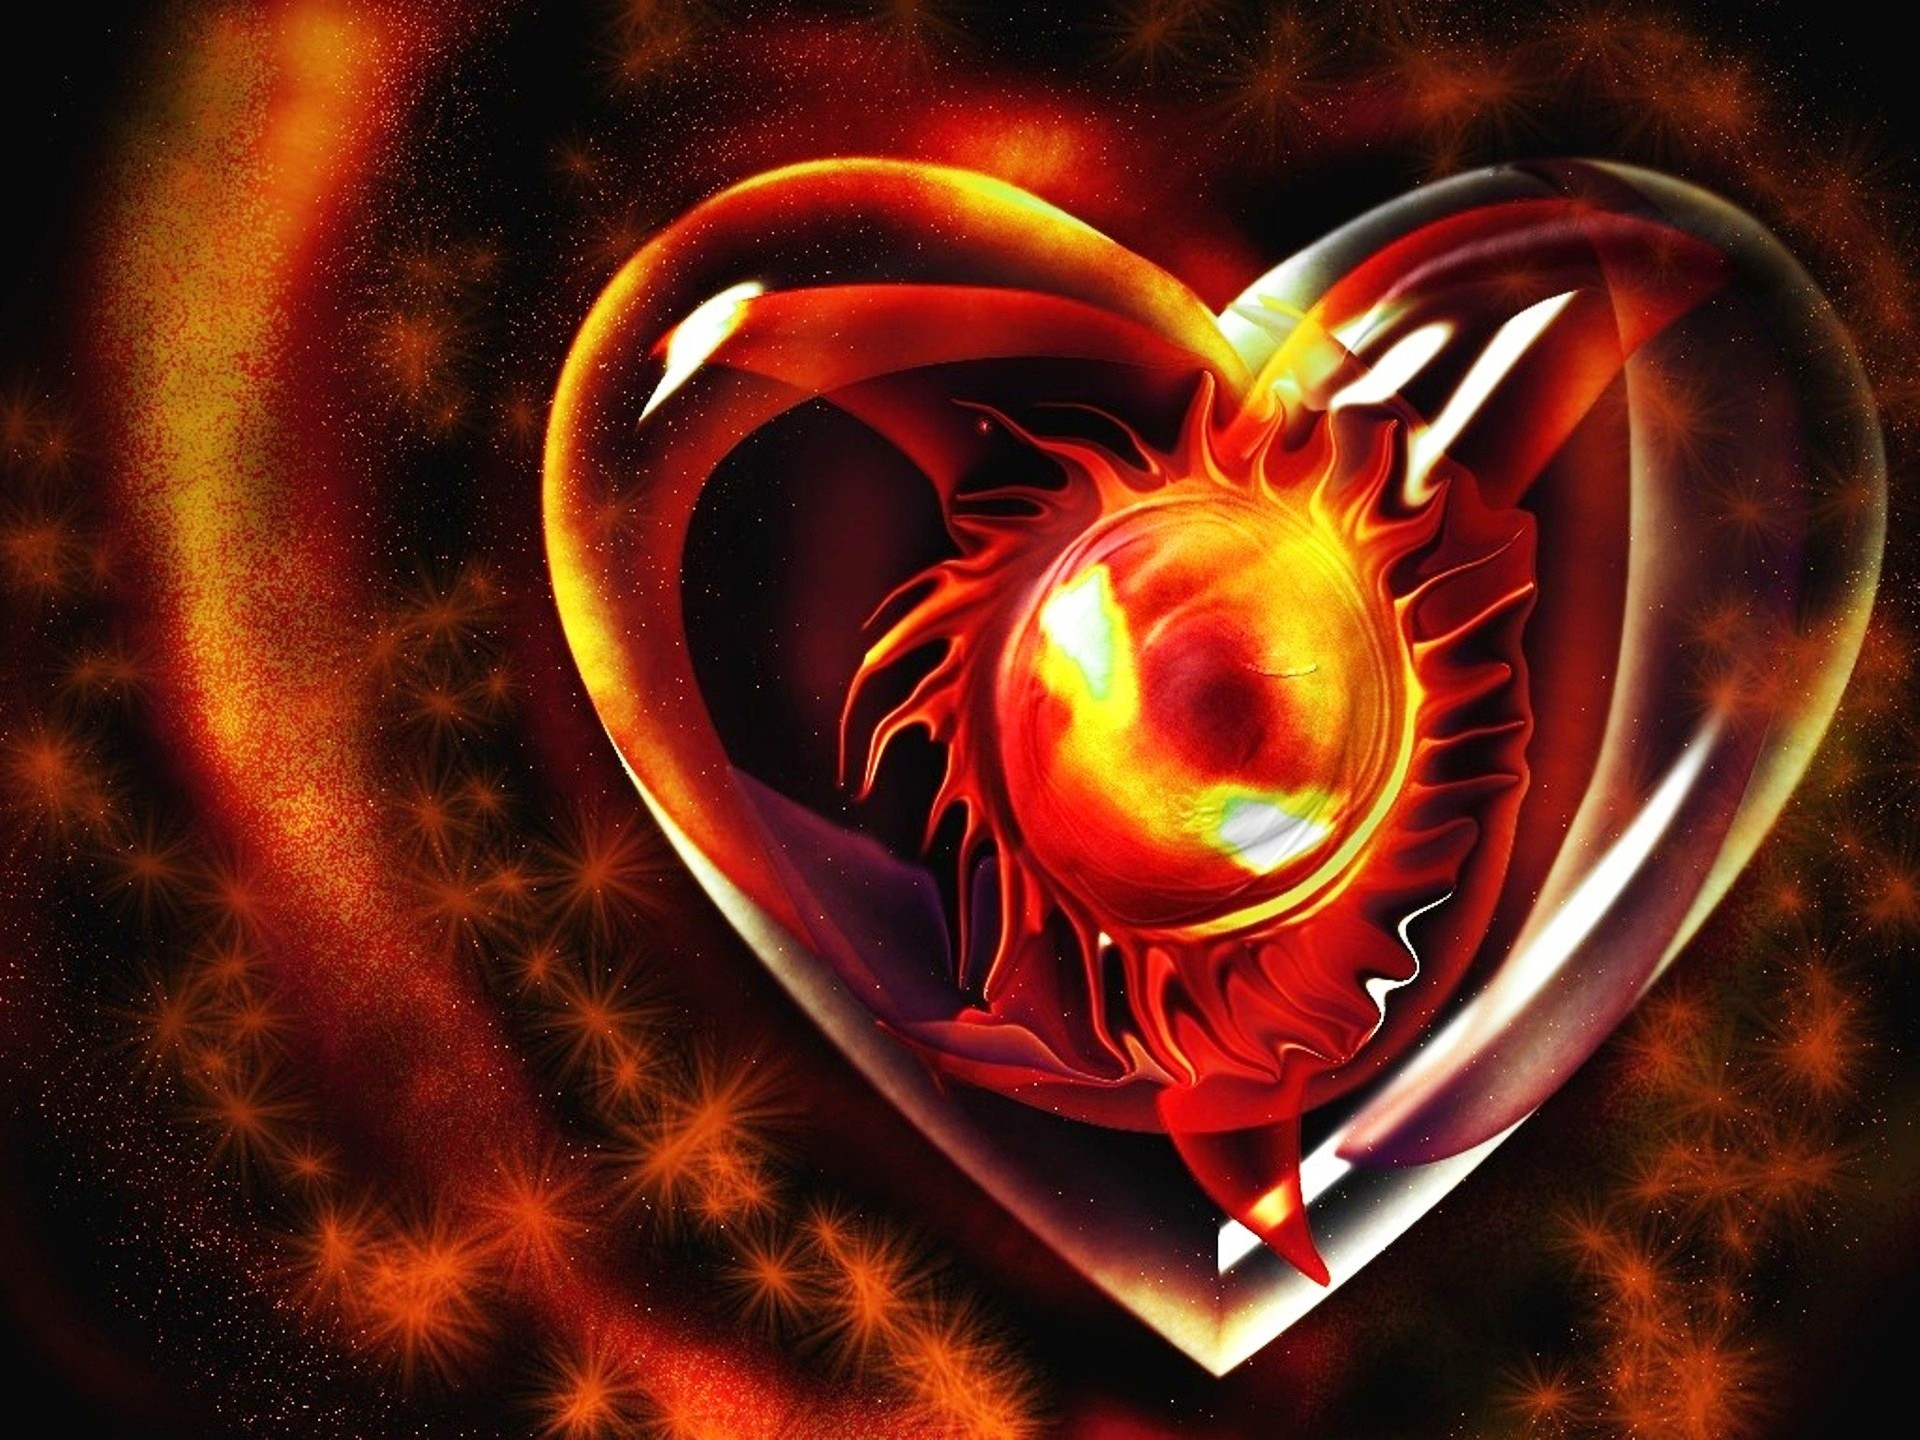 1920x1440 Sky HD Wallpapers Provides awesome collection of high definition Fire Heart  Pictures High Quality Photos Desktop Backgrounds Wallpapers, pictures, ...